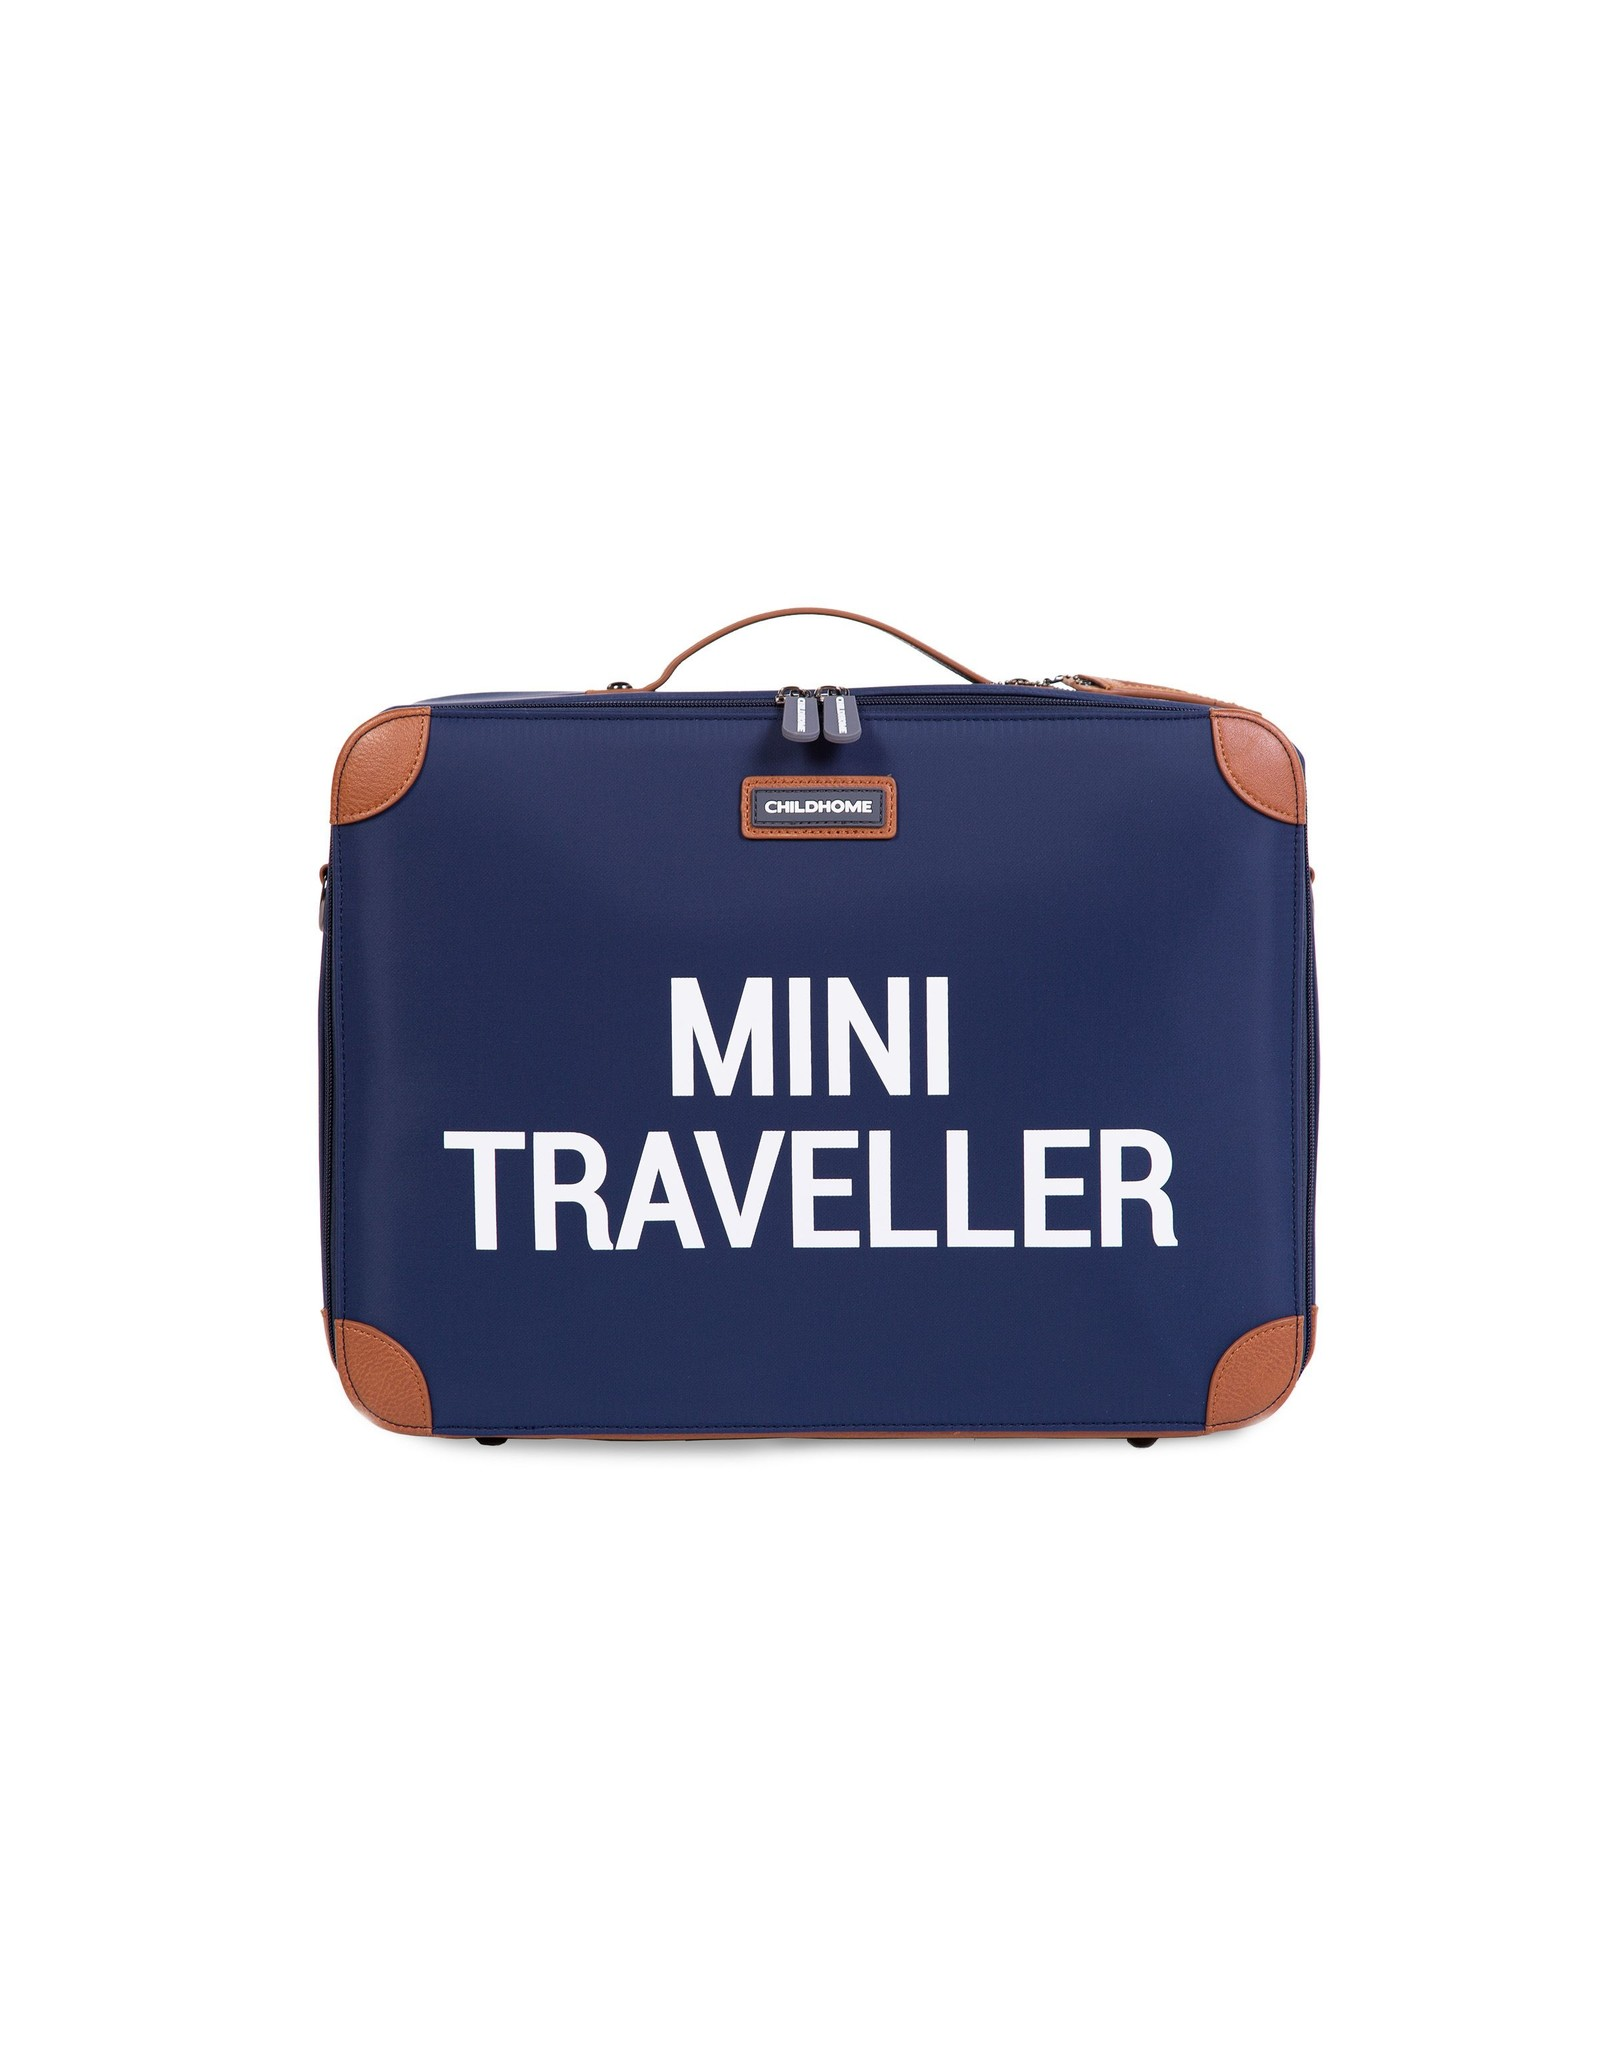 Childhome MINI TRAVELLER VALISE ENFANT - NAVY BLANC